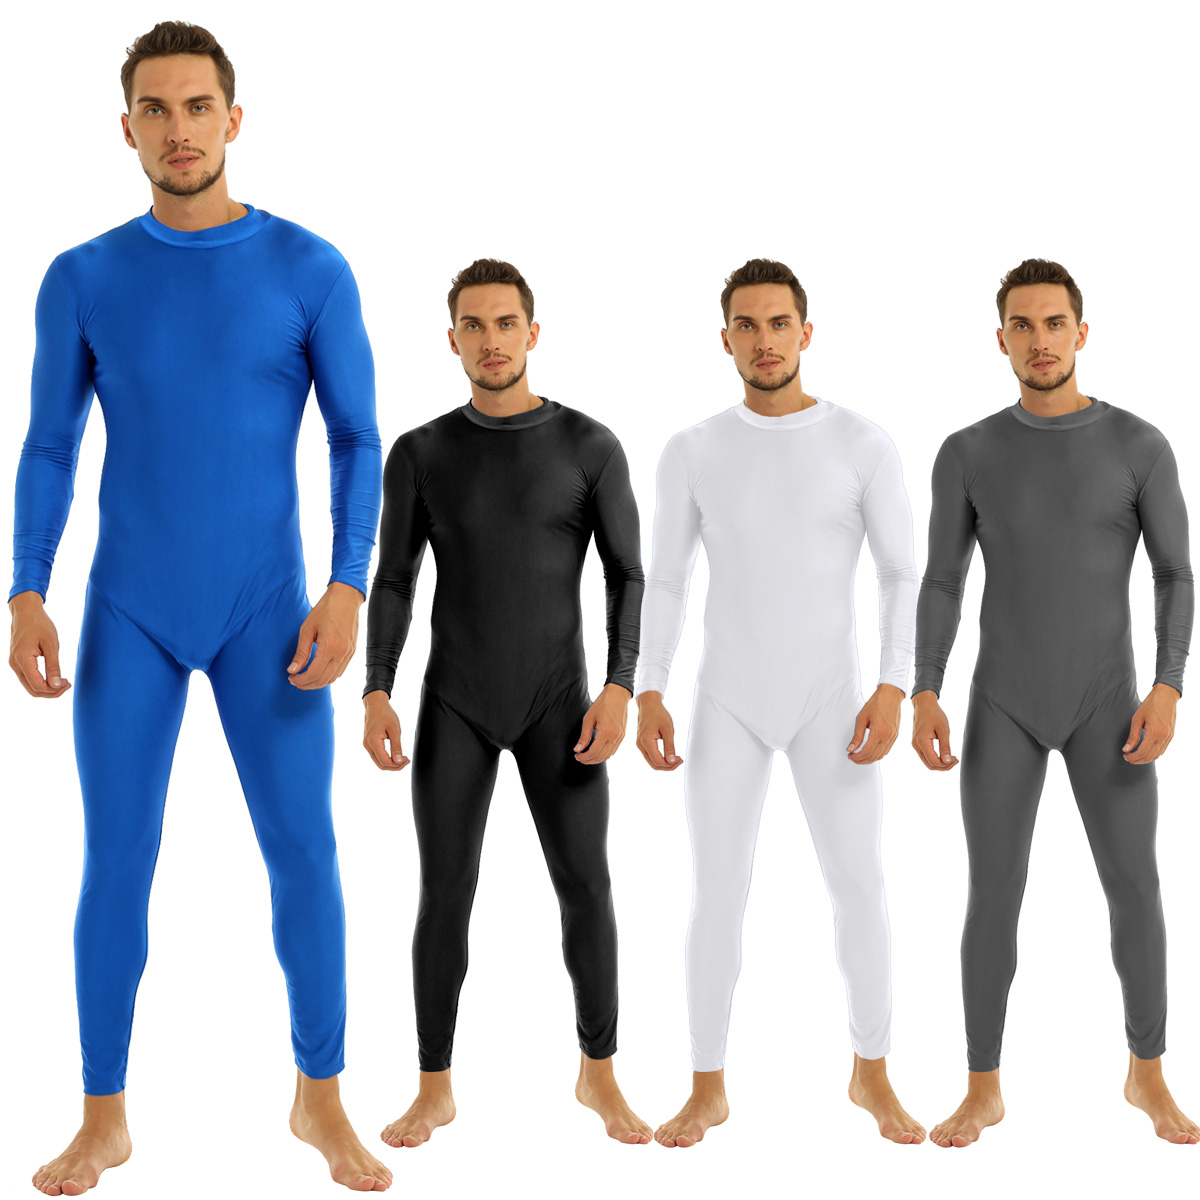 Mens Well Fit One Piece Leotards Long Sleeves Skinny Full-body Catsuit Adult Lycra Dancewear Bodysuit Gymnastics Workout Unitard 13